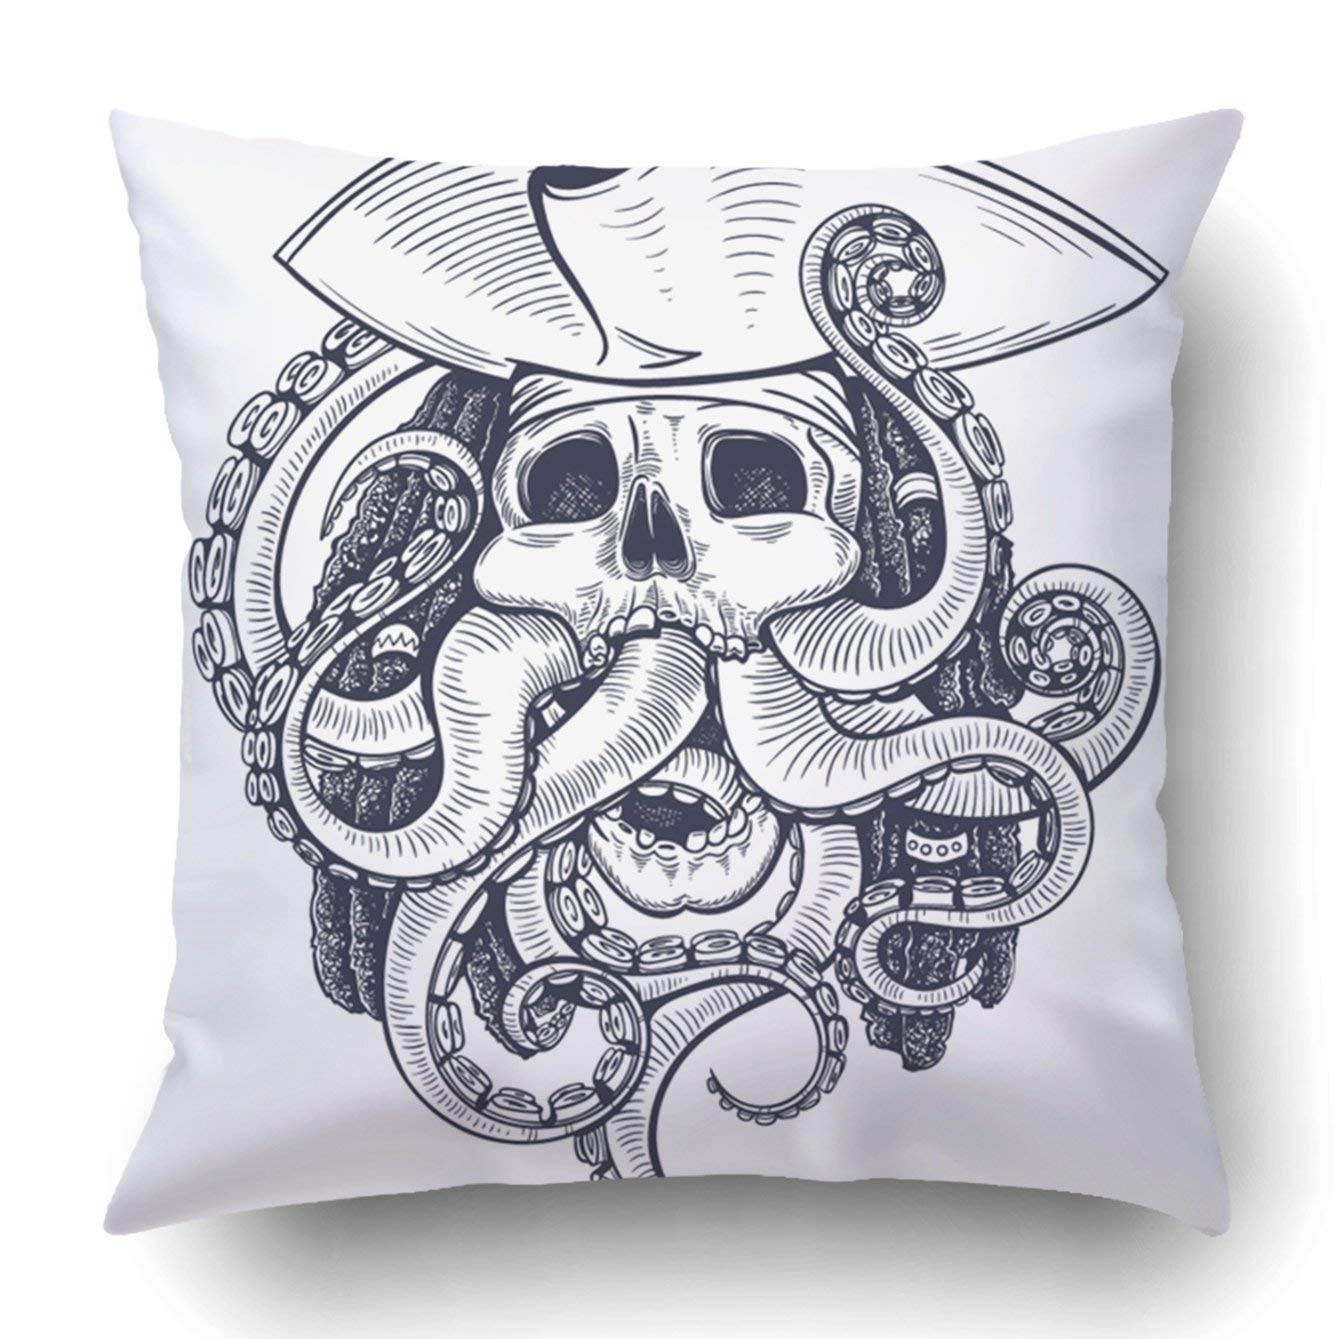 WOPOP Black and White Pirate Skull Tentacle Pillowcase Throw Pillow Cover Case 16x16 inches